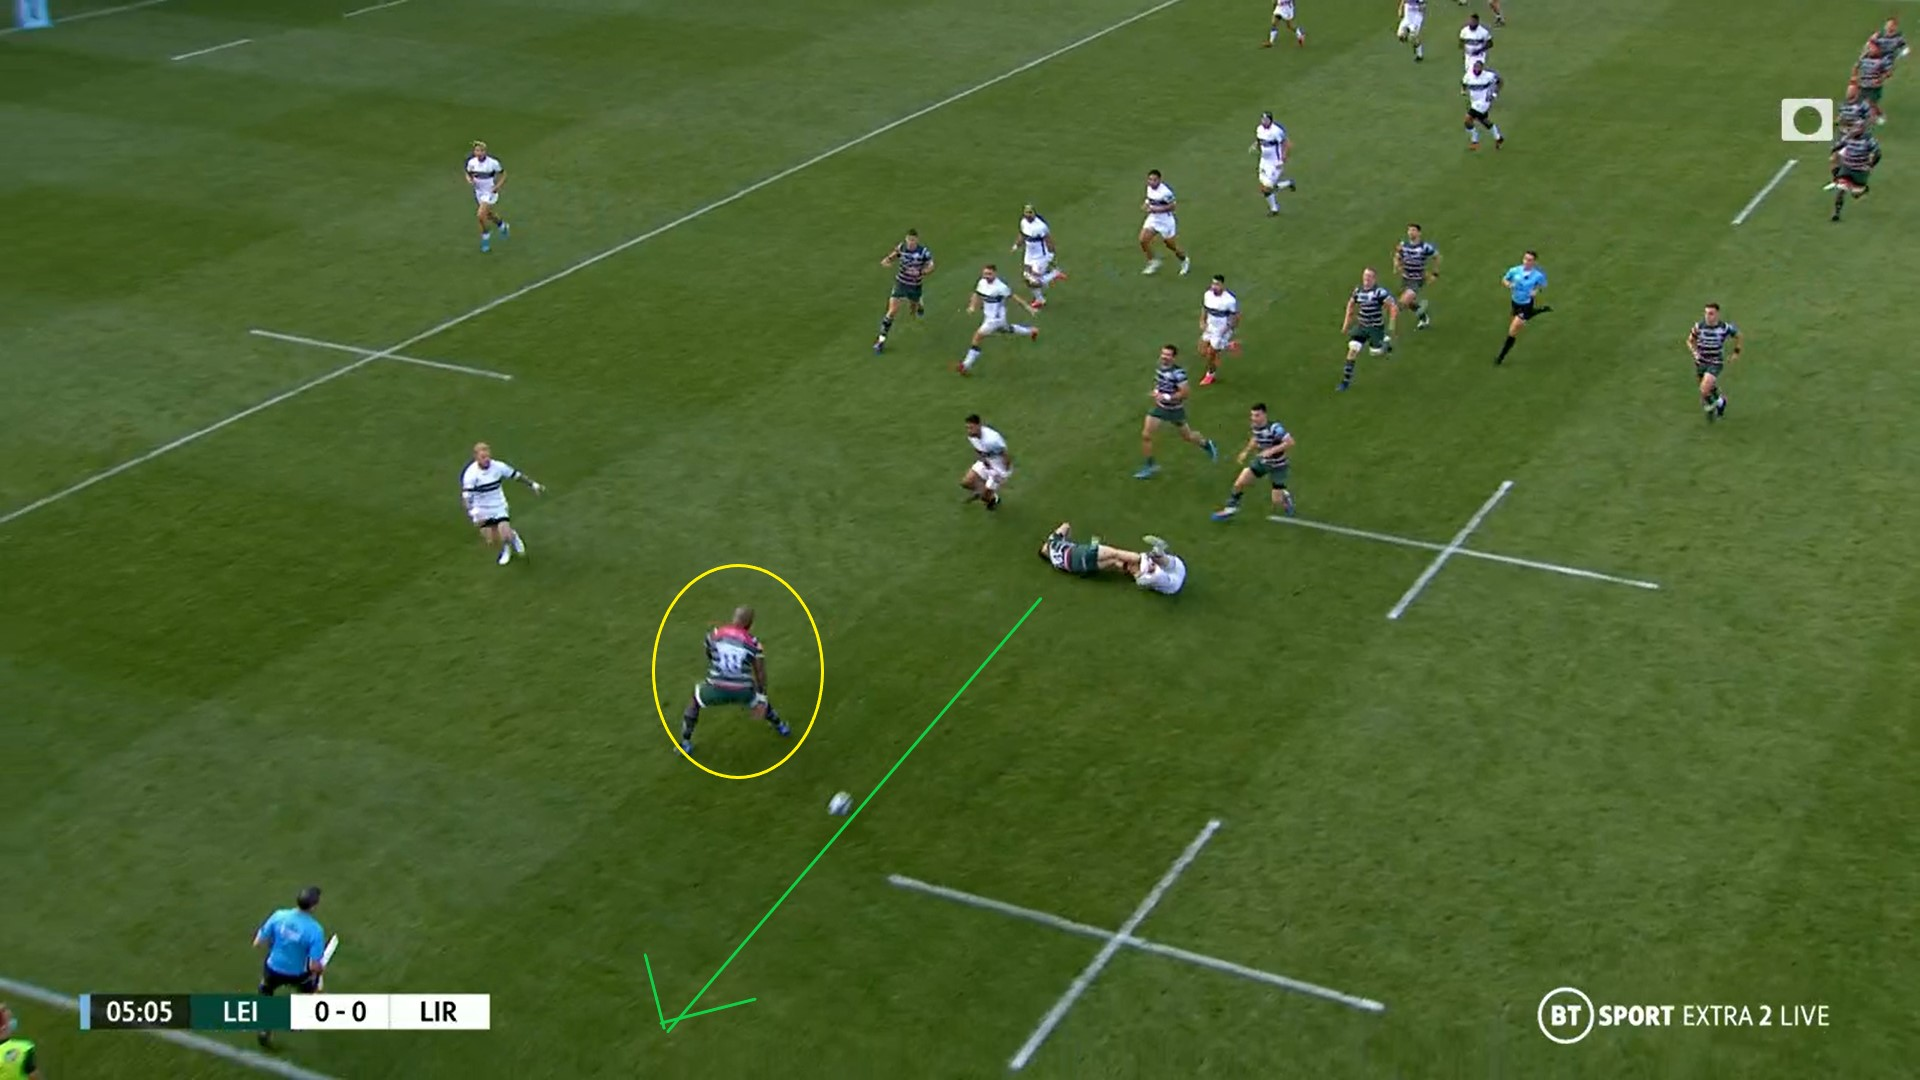 English Premiership 2019/2020: Leicester Tigers v London Irish - positives and negatives for the Tigers - tactical analysis tactics